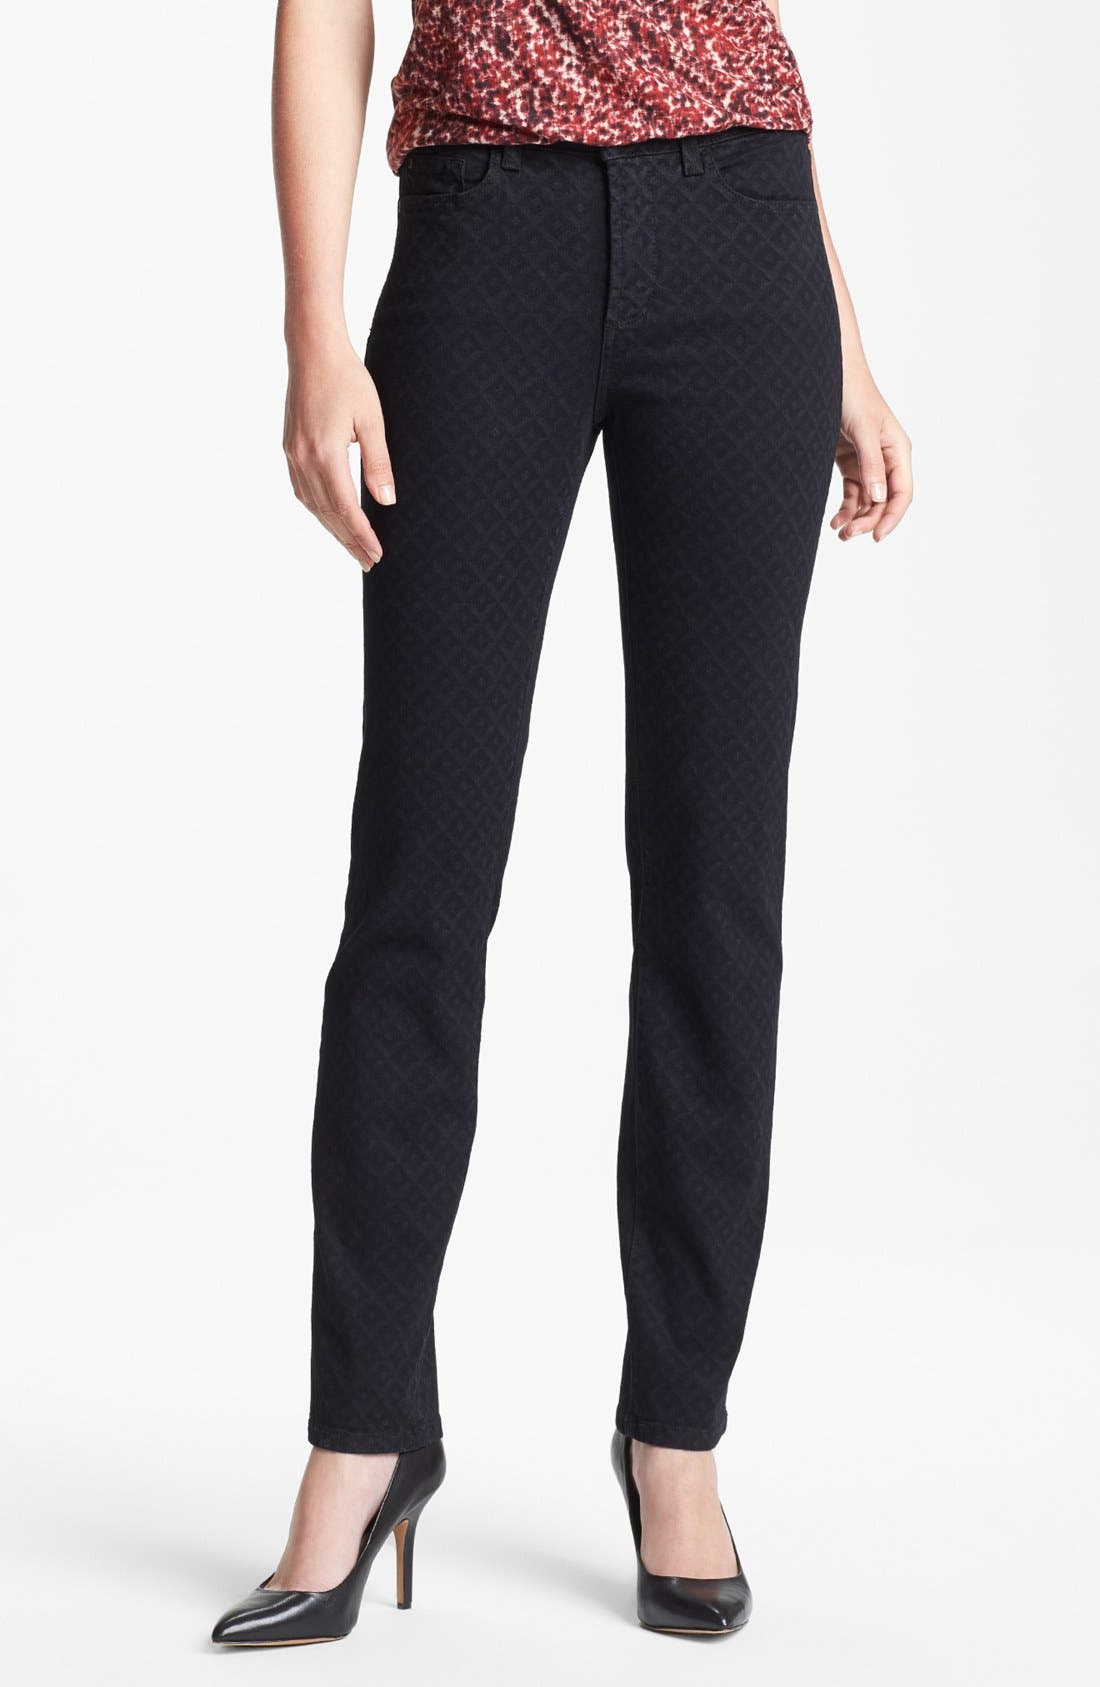 Alternate Image 1 Selected - NYDJ 'Sheri' Print Stretch Skinny Jeans (Regular & Petite)